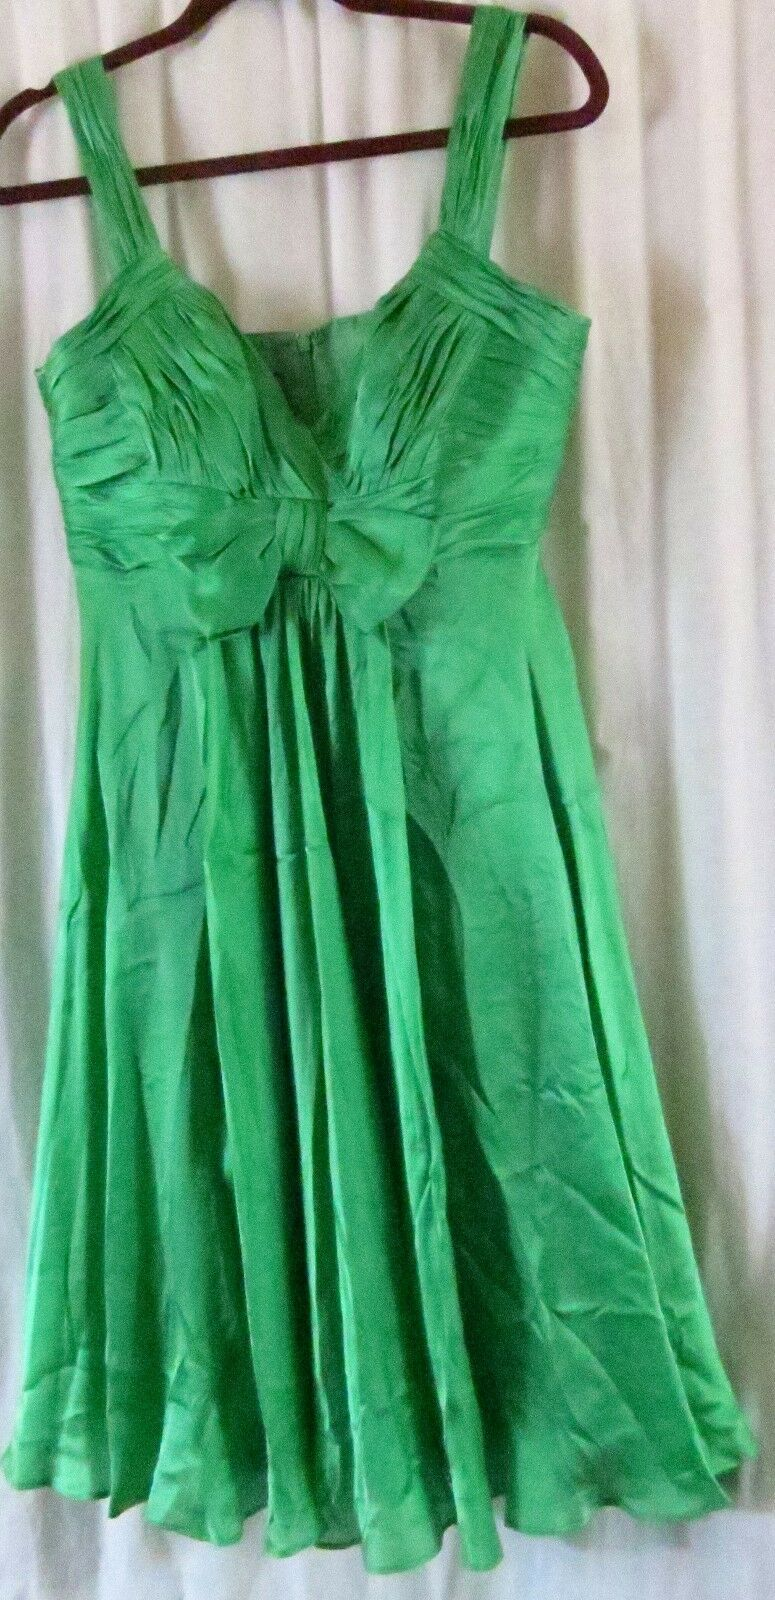 Anne Klein Dress 10 Green Strap V Neck Knee Length Cocktail Party Silk